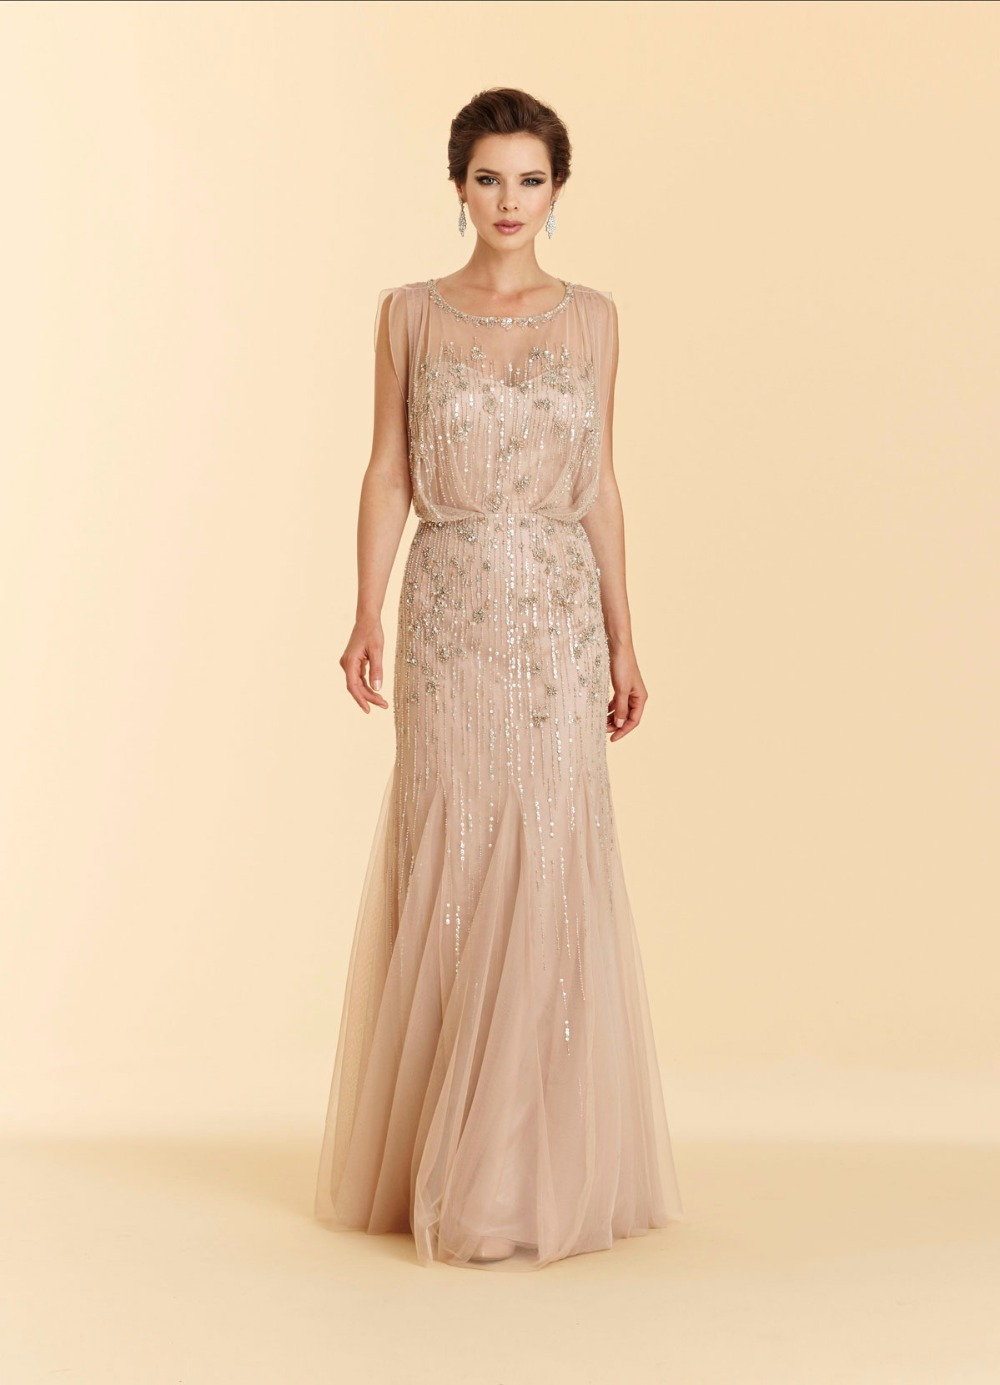 Luxury Beaded Mother Of The Bride Dresses 2017 Sheath Floor Length Mother S Formal Evening